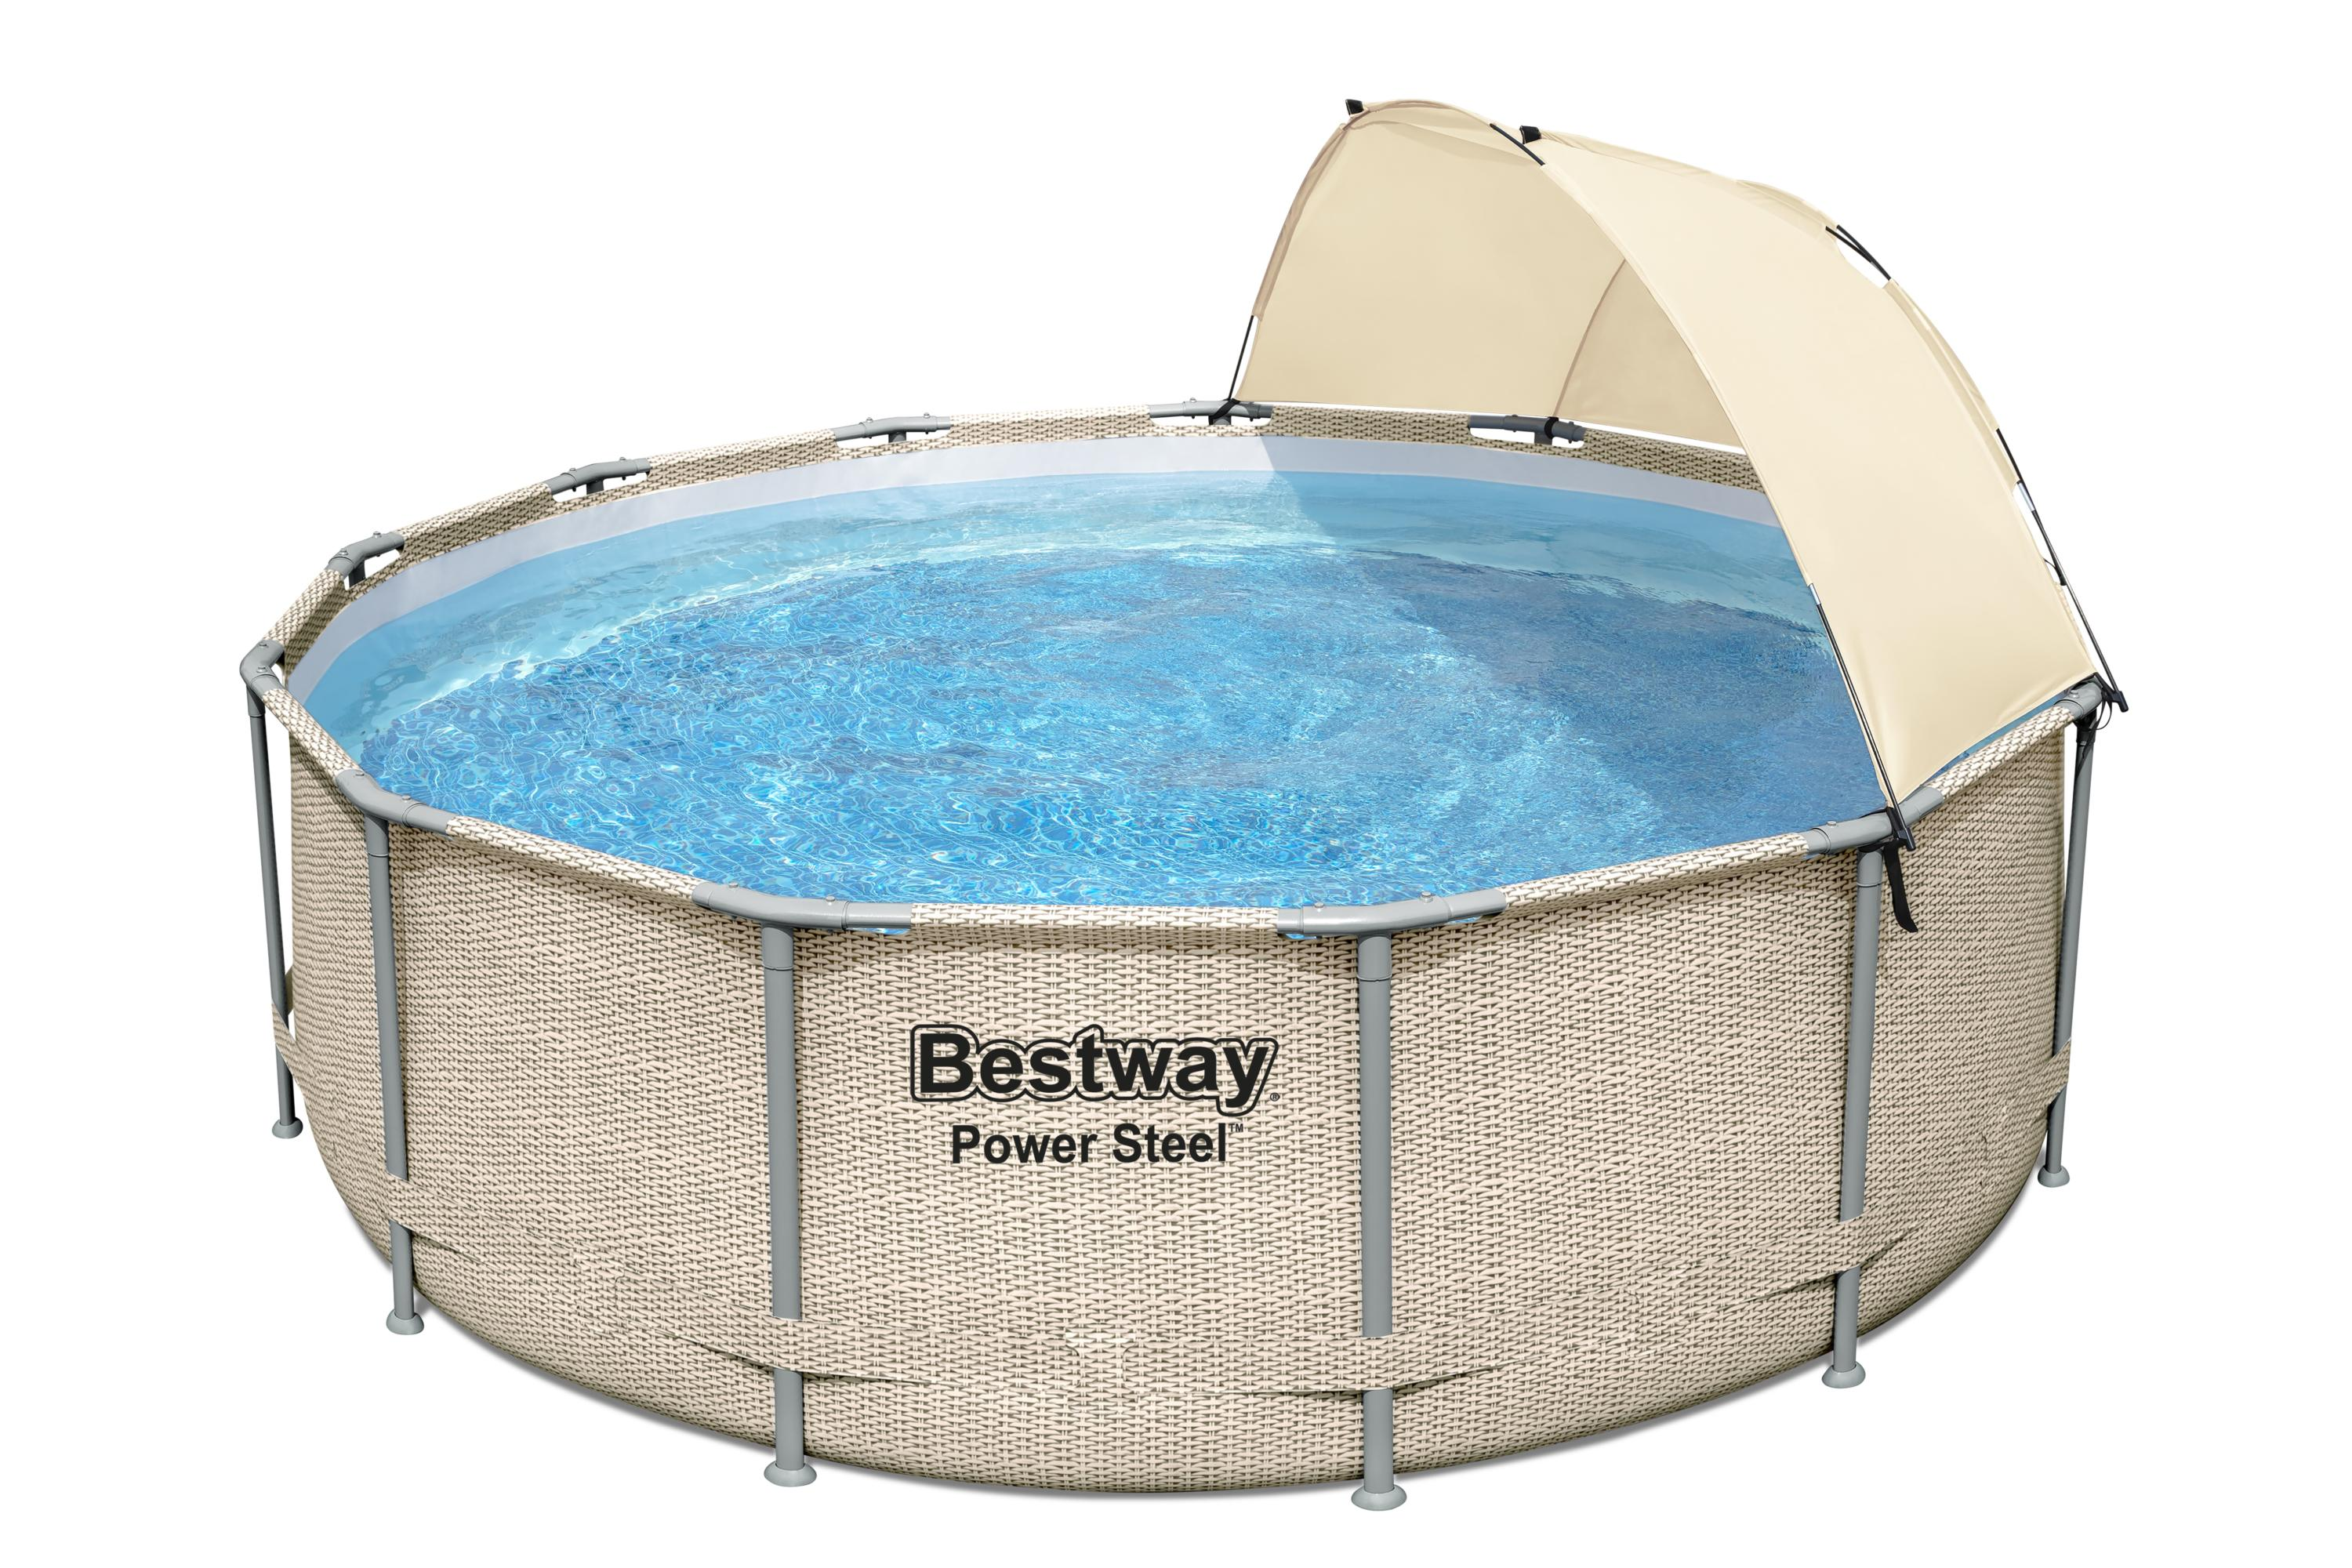 Piscine Power Steel™ décor rotin et auvent